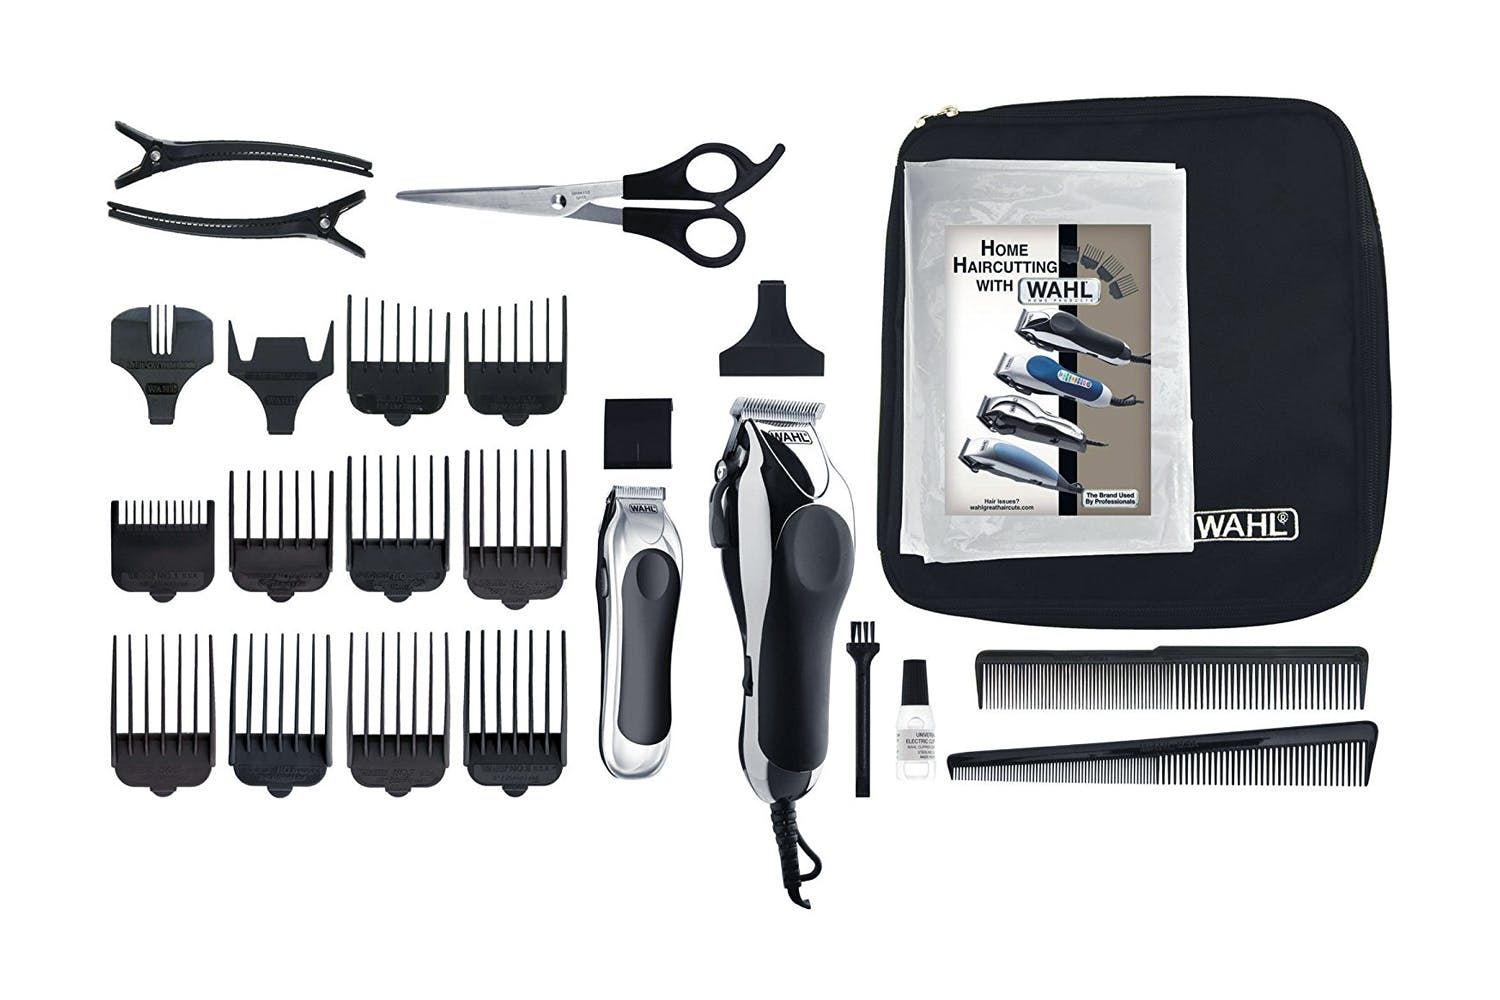 Haircut kits clippers hair clippers wahl clippers harvey wahl deluxe chrome pro hair clipper kit solutioingenieria Image collections